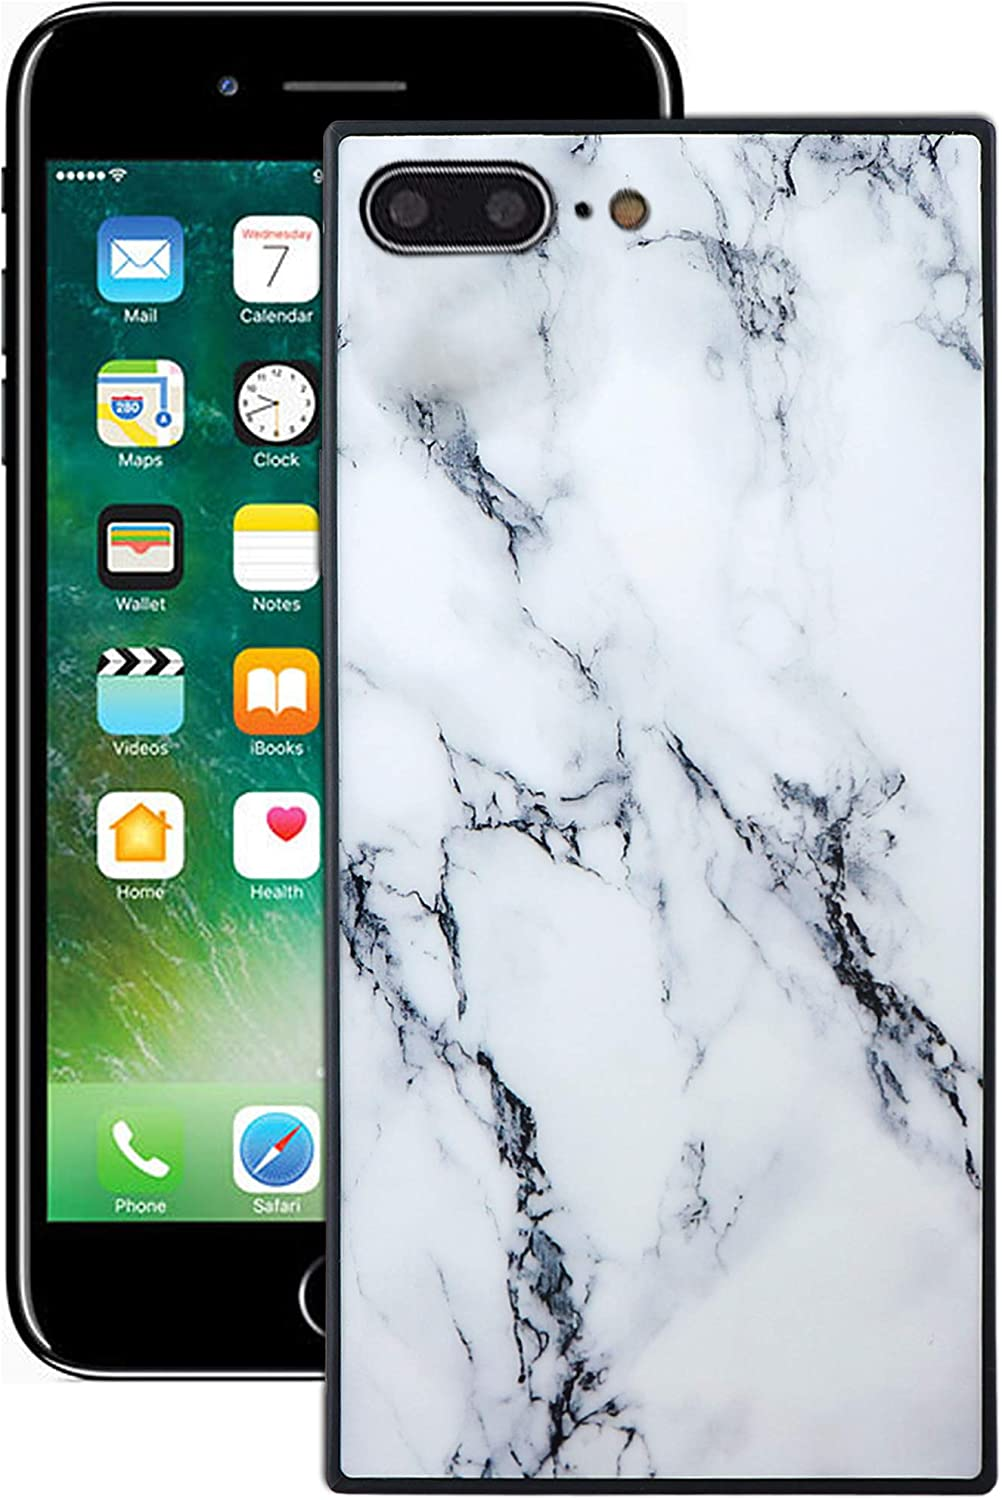 IP 7 Plus Case Square Compatible with Apple iPhone 7Plus / 8Plus Cover I Phone 8 7P 8P I7plus I8plus IPhone7Plus Iph Marble Luxury Protective Bumper Skin 5.5 Inch (White)